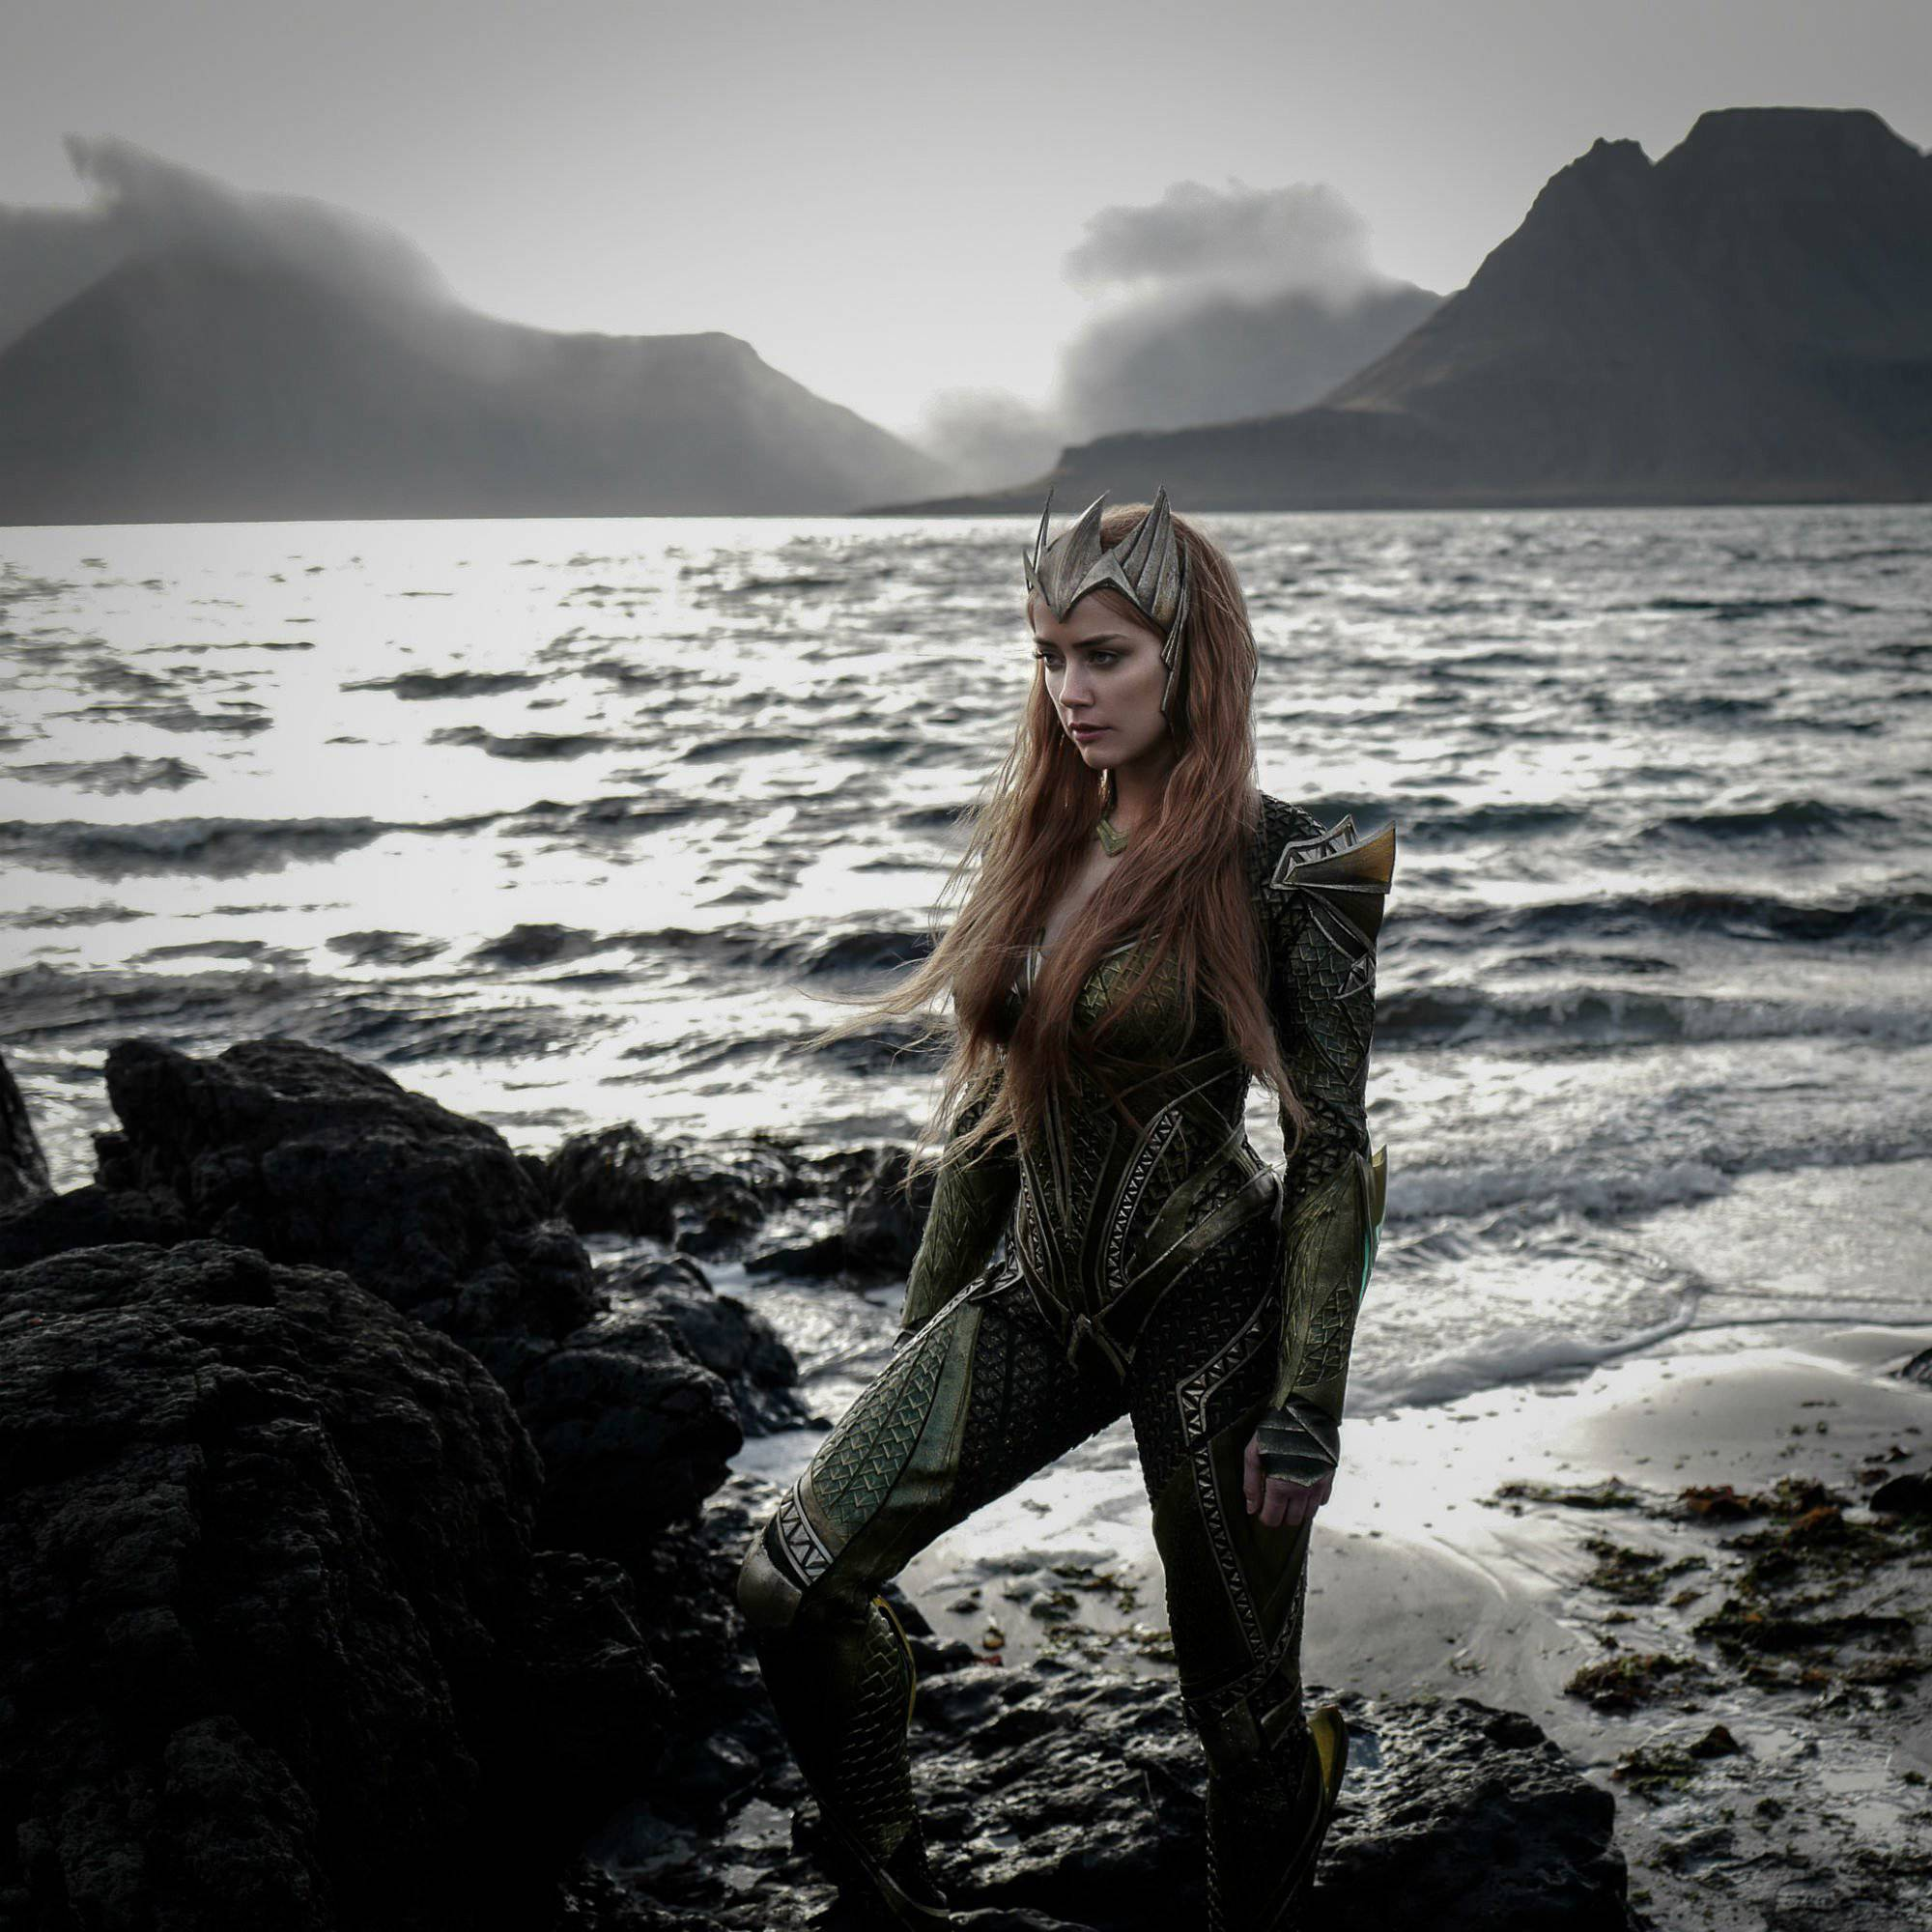 Mera in Aquaman Movie